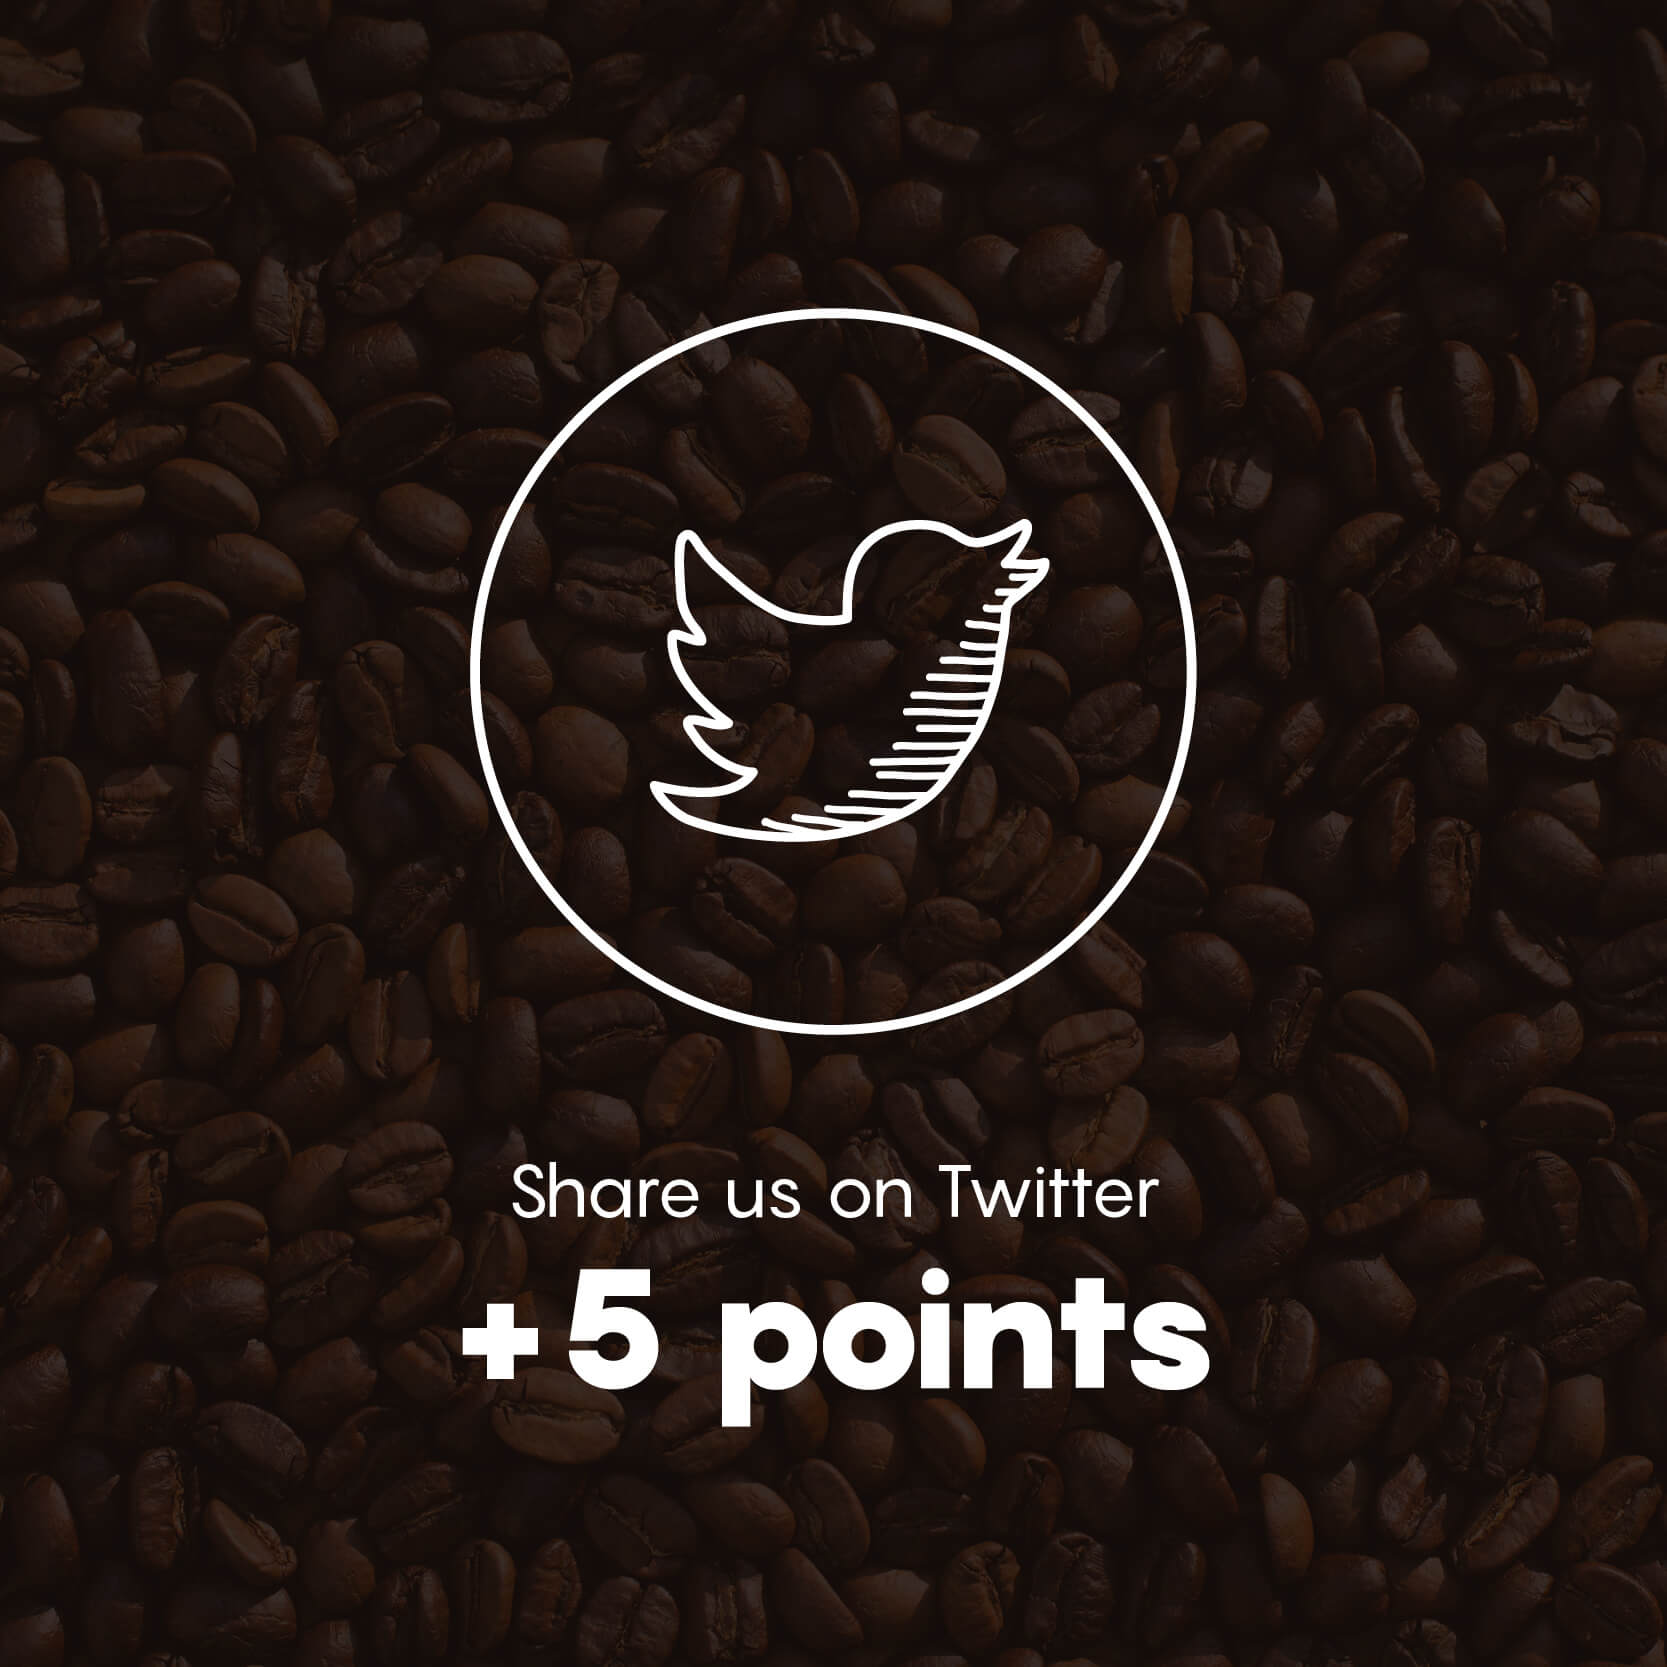 Share us on Twitter +5 Points